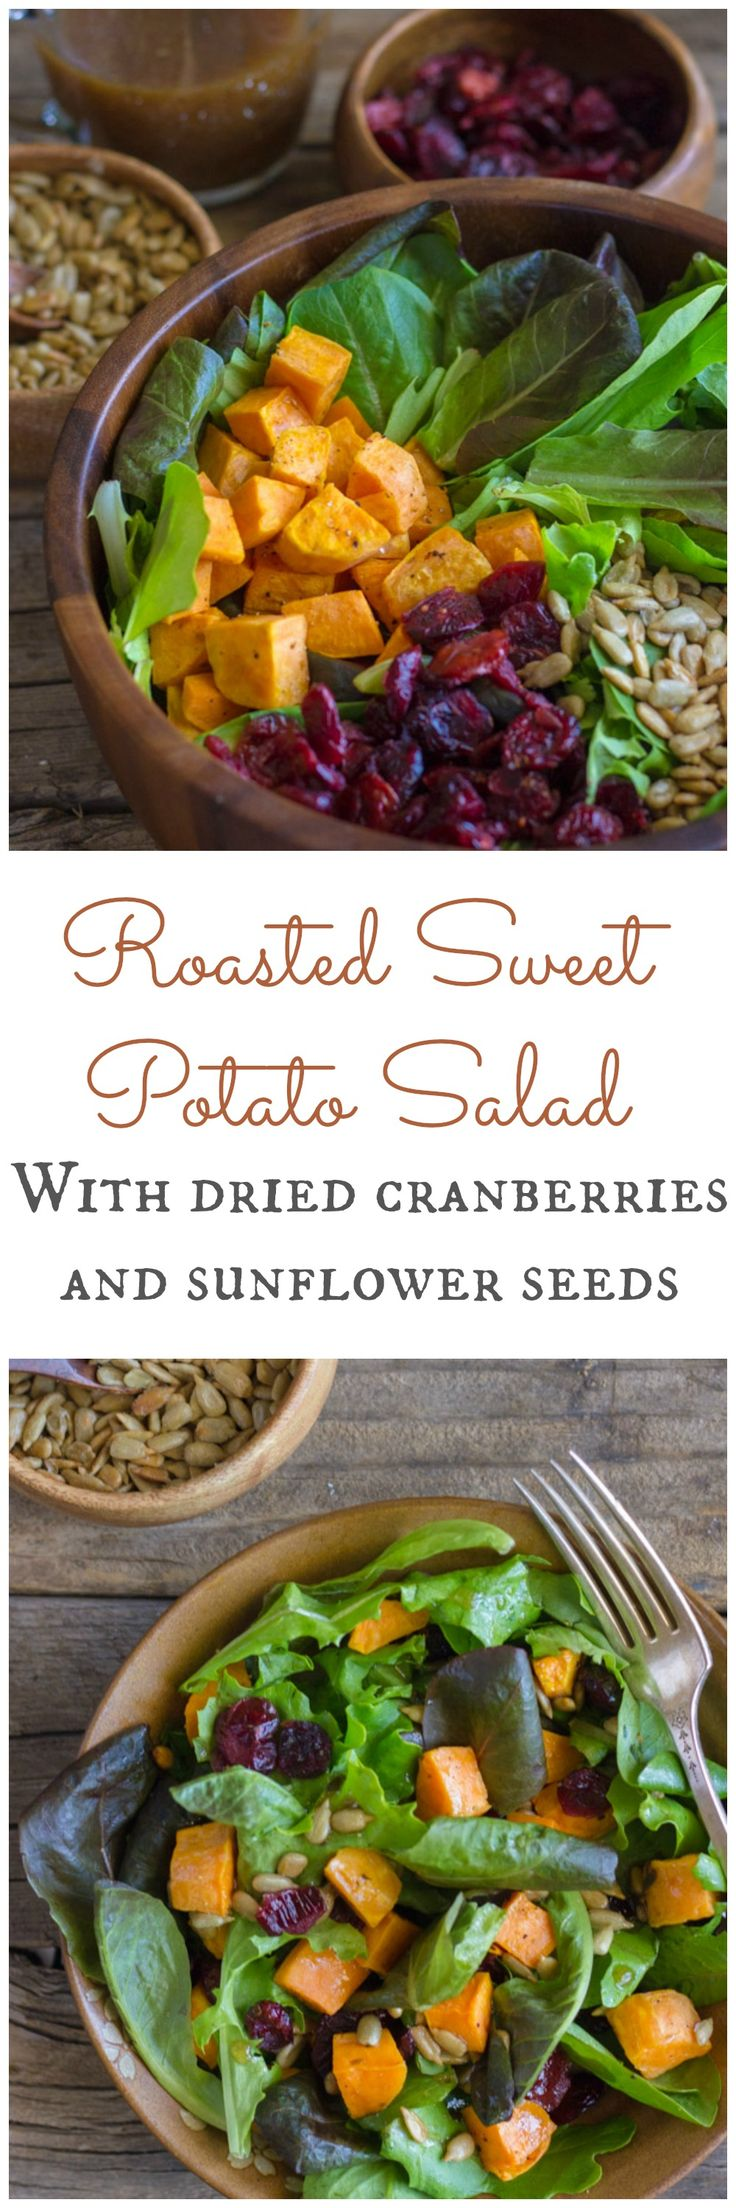 Roasted Sweet Potato Salad with dried cranberries, sunflower seeds and Kraft Balsamic Vinaigrette.  #KraftSaladDressing